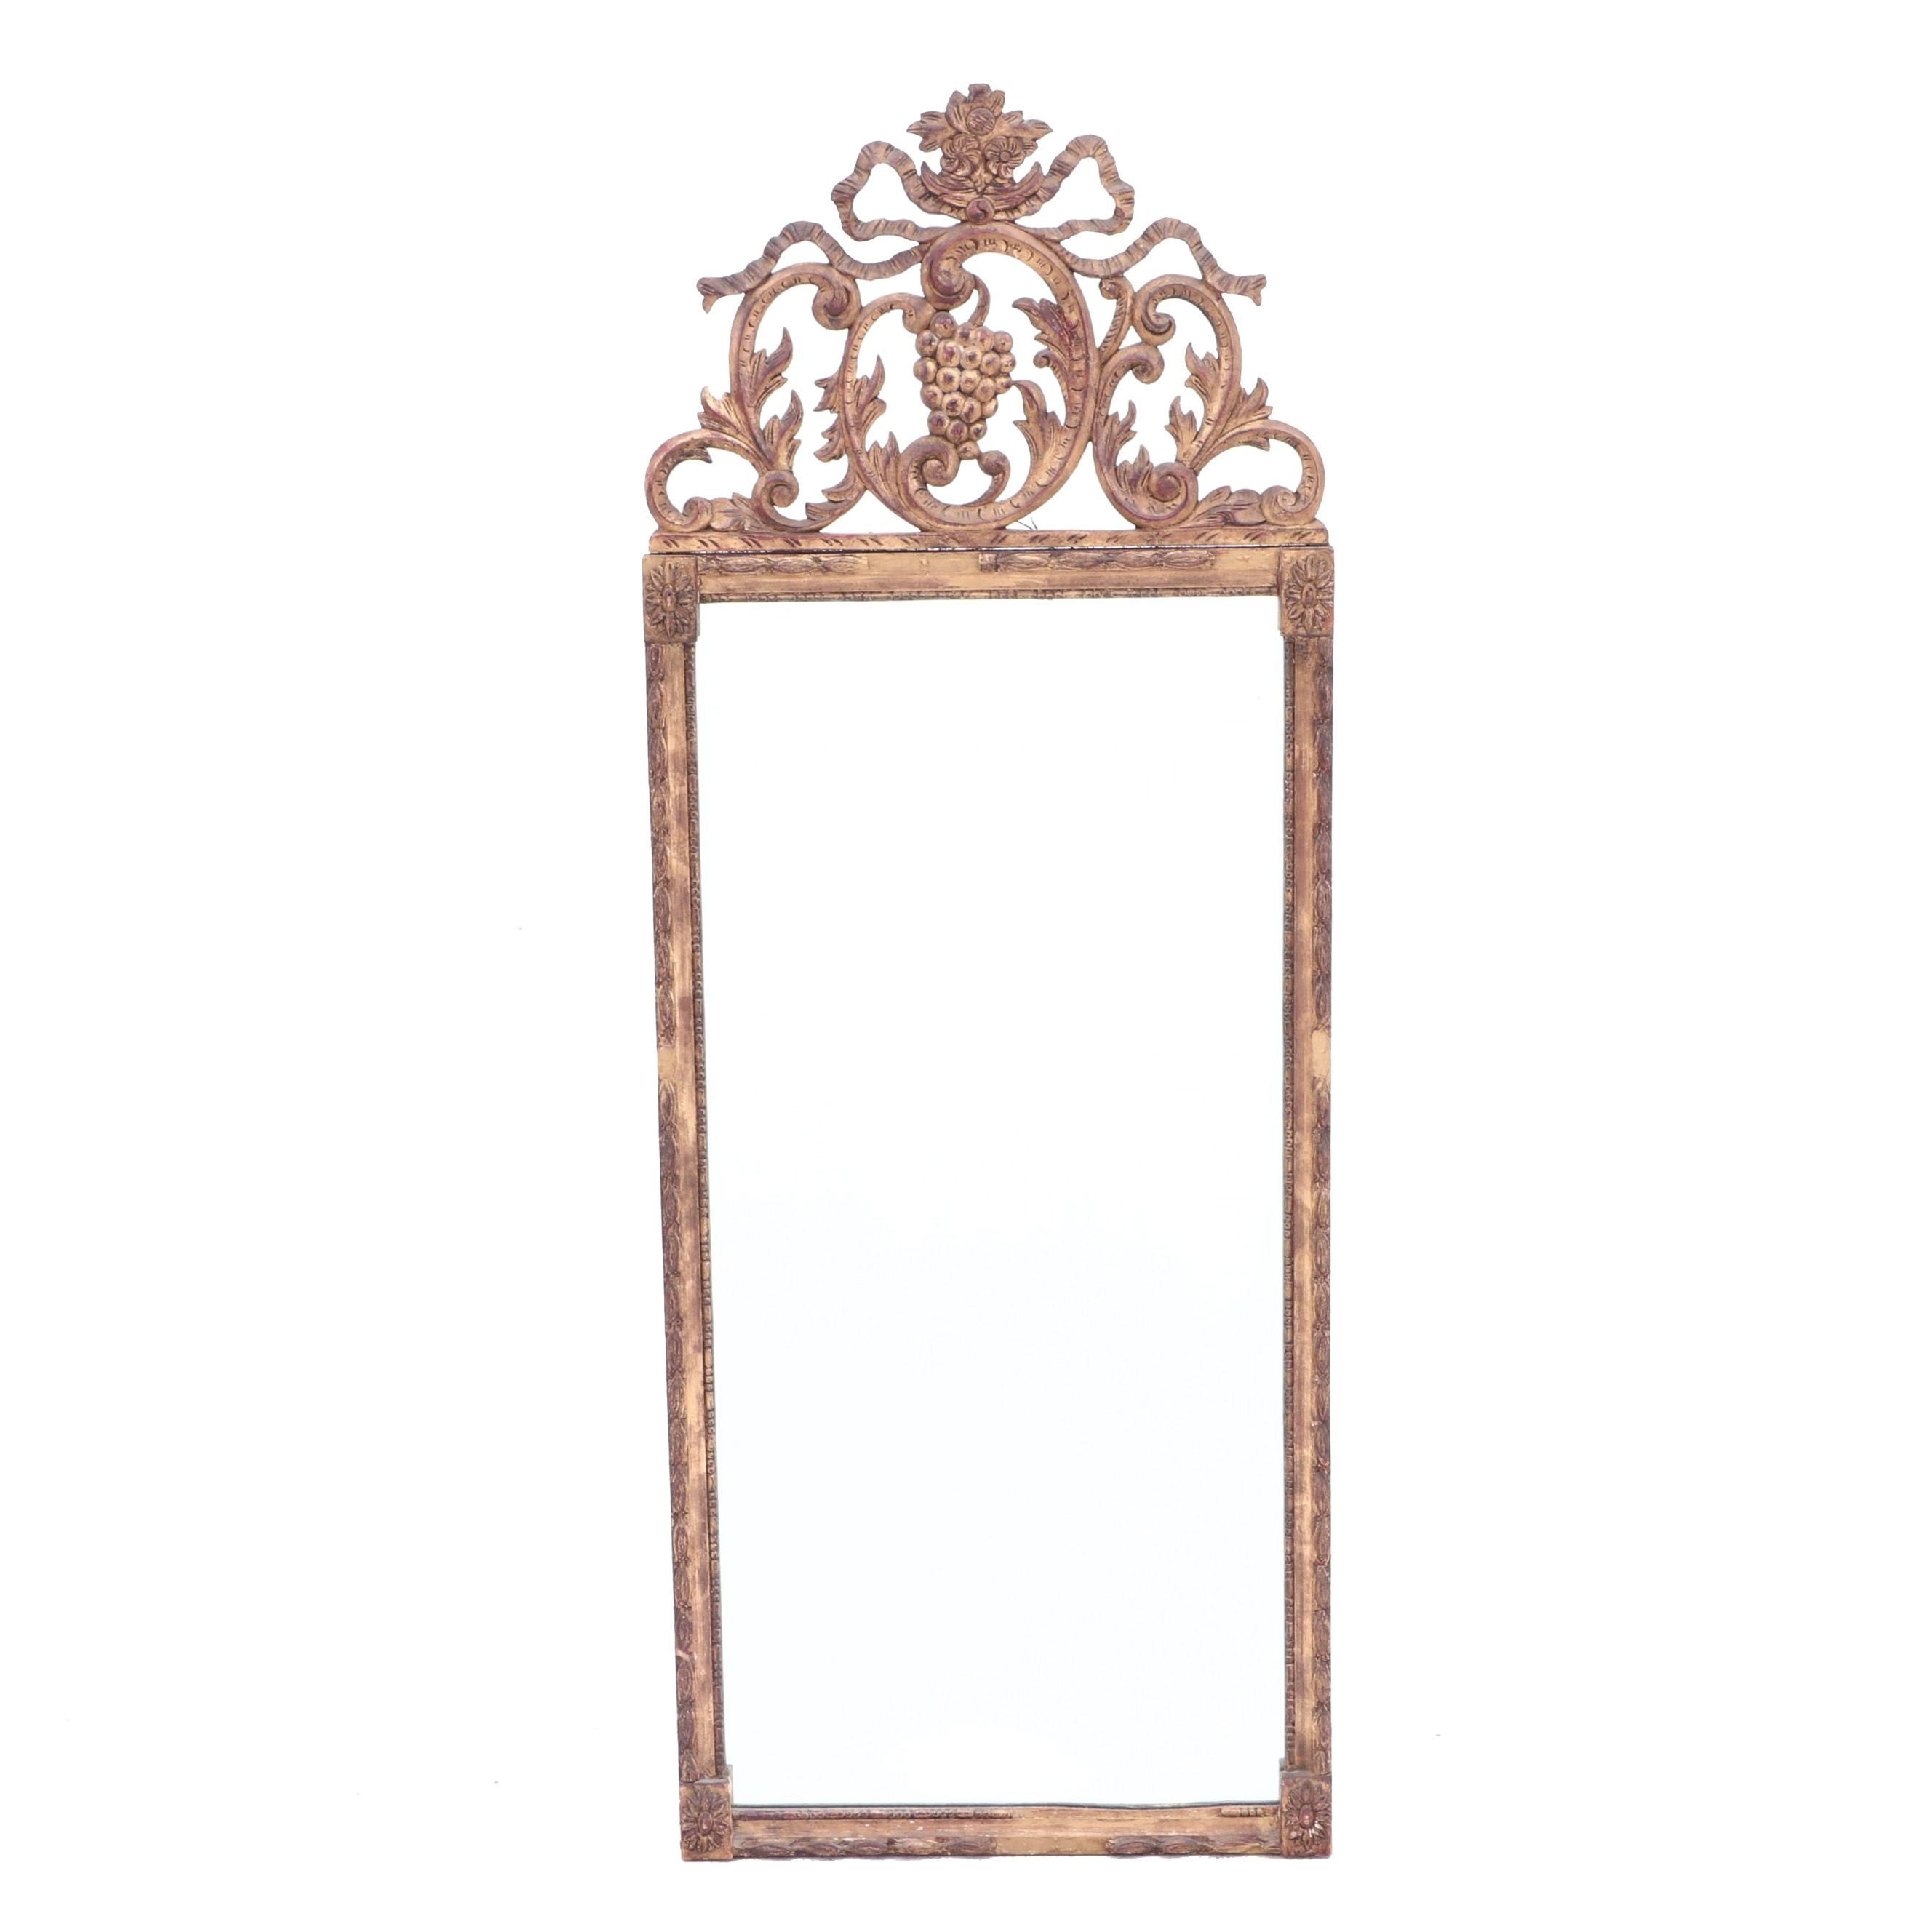 Giltwood Scroll and Acanthus Wall Mirror, Ca. 19th Century